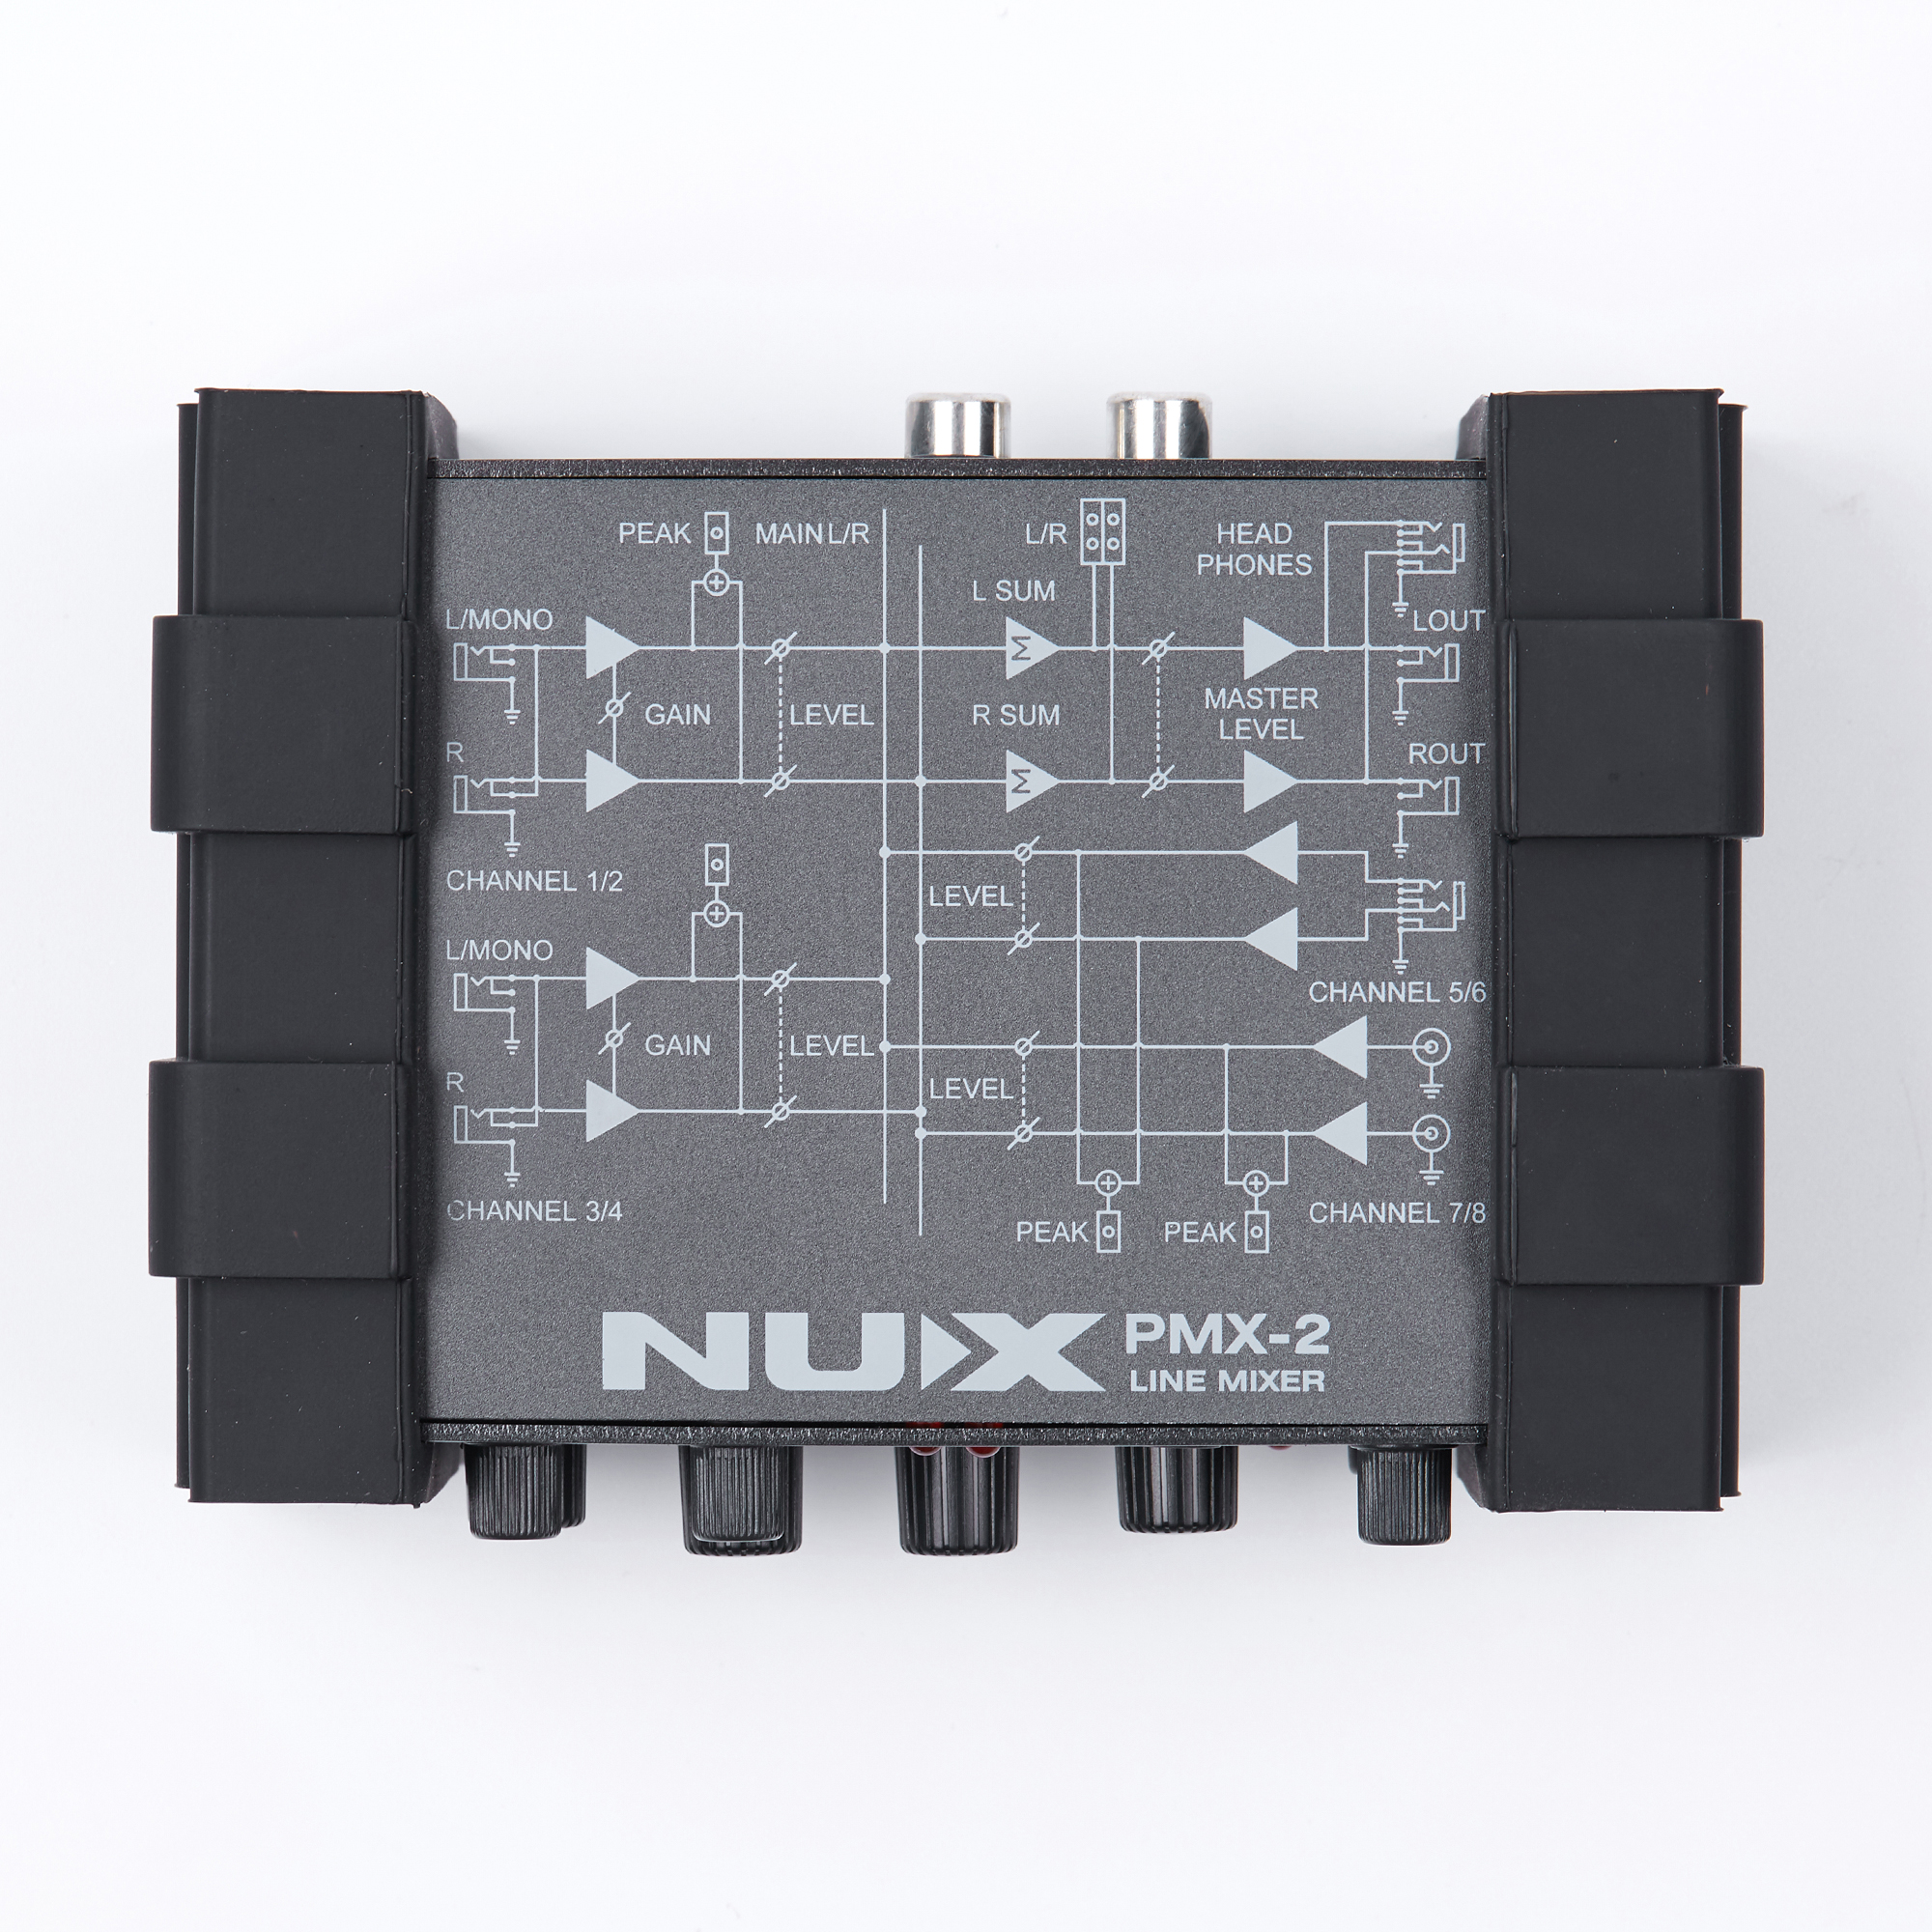 Gain Control 8 Inputs and 2 Outputs NUX PMX-2 Multi-Channel Mini Mixer 30 Musical Instruments Accessories for Guitar Bass Player ключ topex 35d937